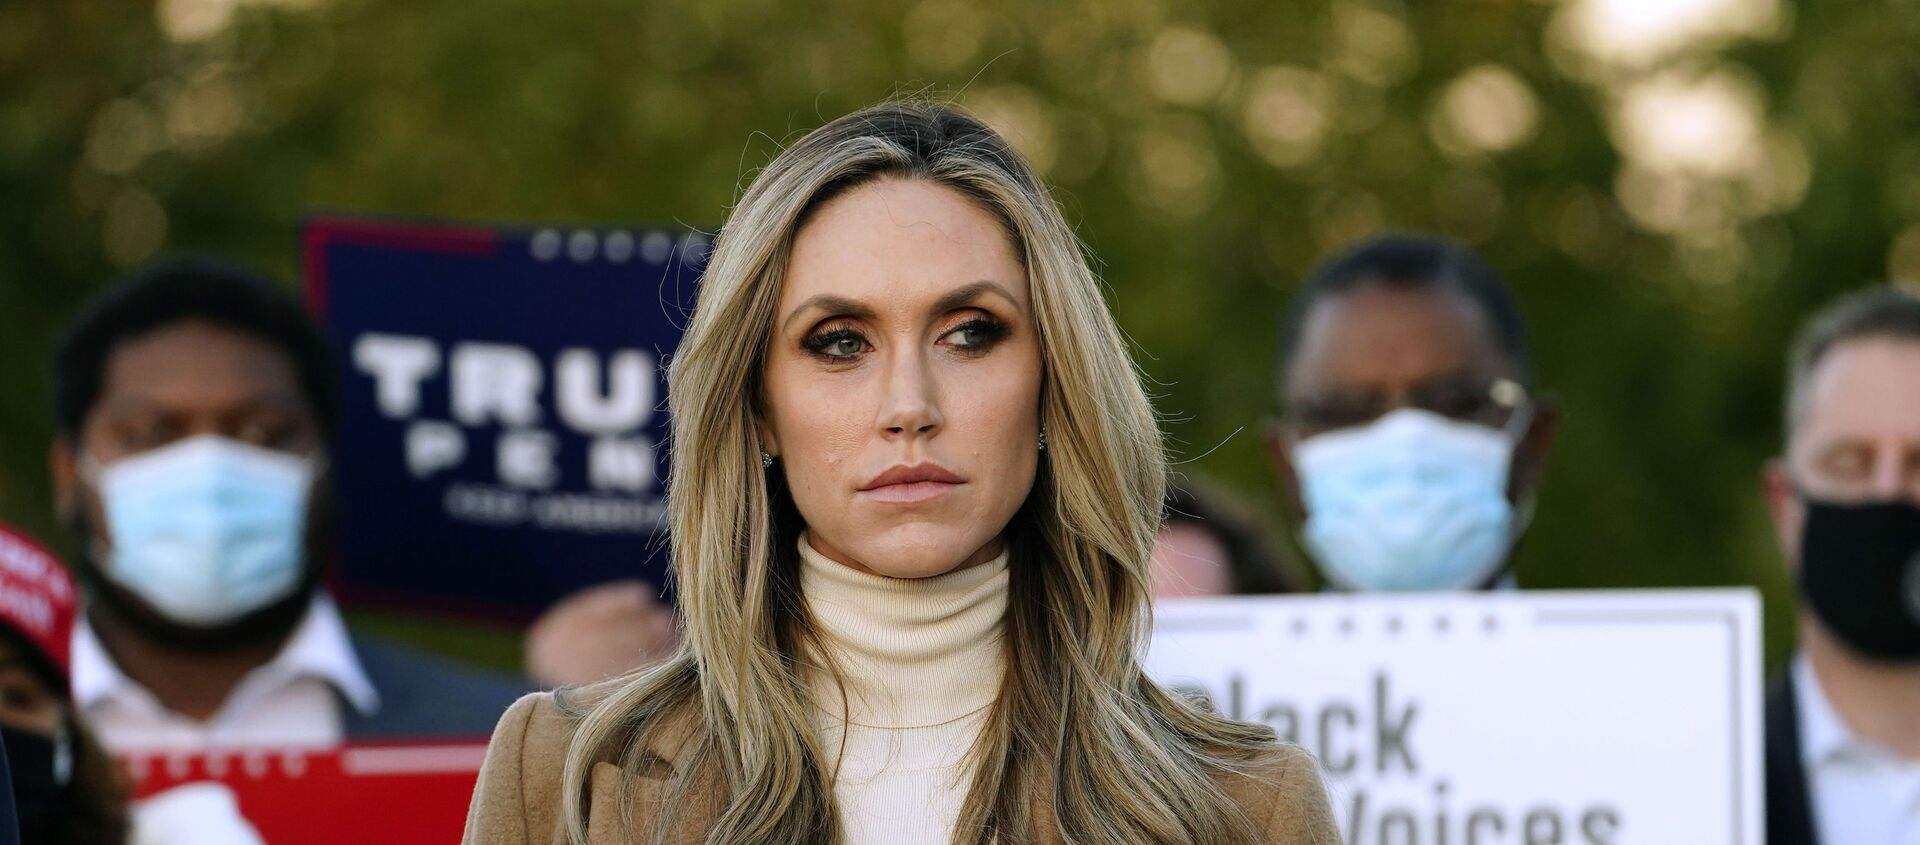 Lara Trump, daughter-in-law of President Donald Trump listens to Rudy Giuliani, a lawyer for President Trump, speak during a news conference on legal challenges to vote counting in Pennsylvania, Wednesday, Nov. 4, 2020, in Philadelphia - Sputnik International, 1920, 10.04.2021